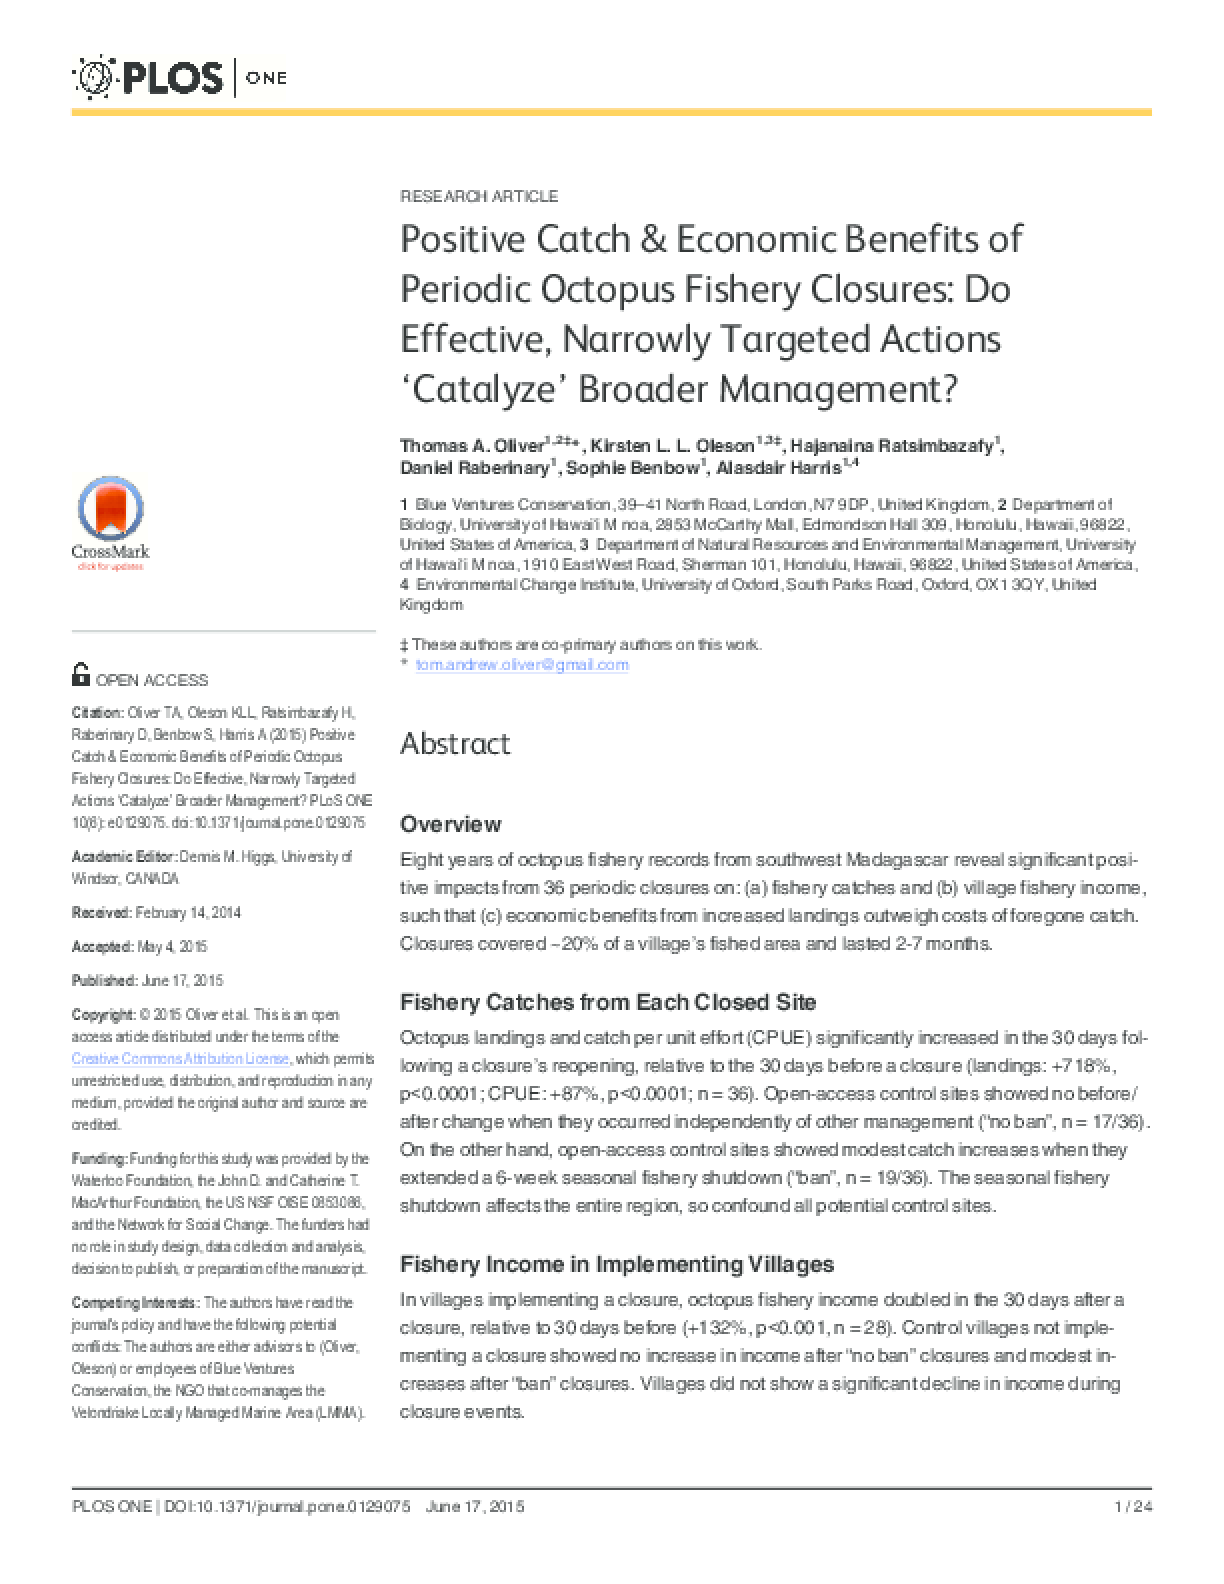 Positive Catch and Economic Benefits of Periodic Octopus Fishery Closures: Do Effective, Narrowly Targeted Actions 'Catalyze' Broader Management?